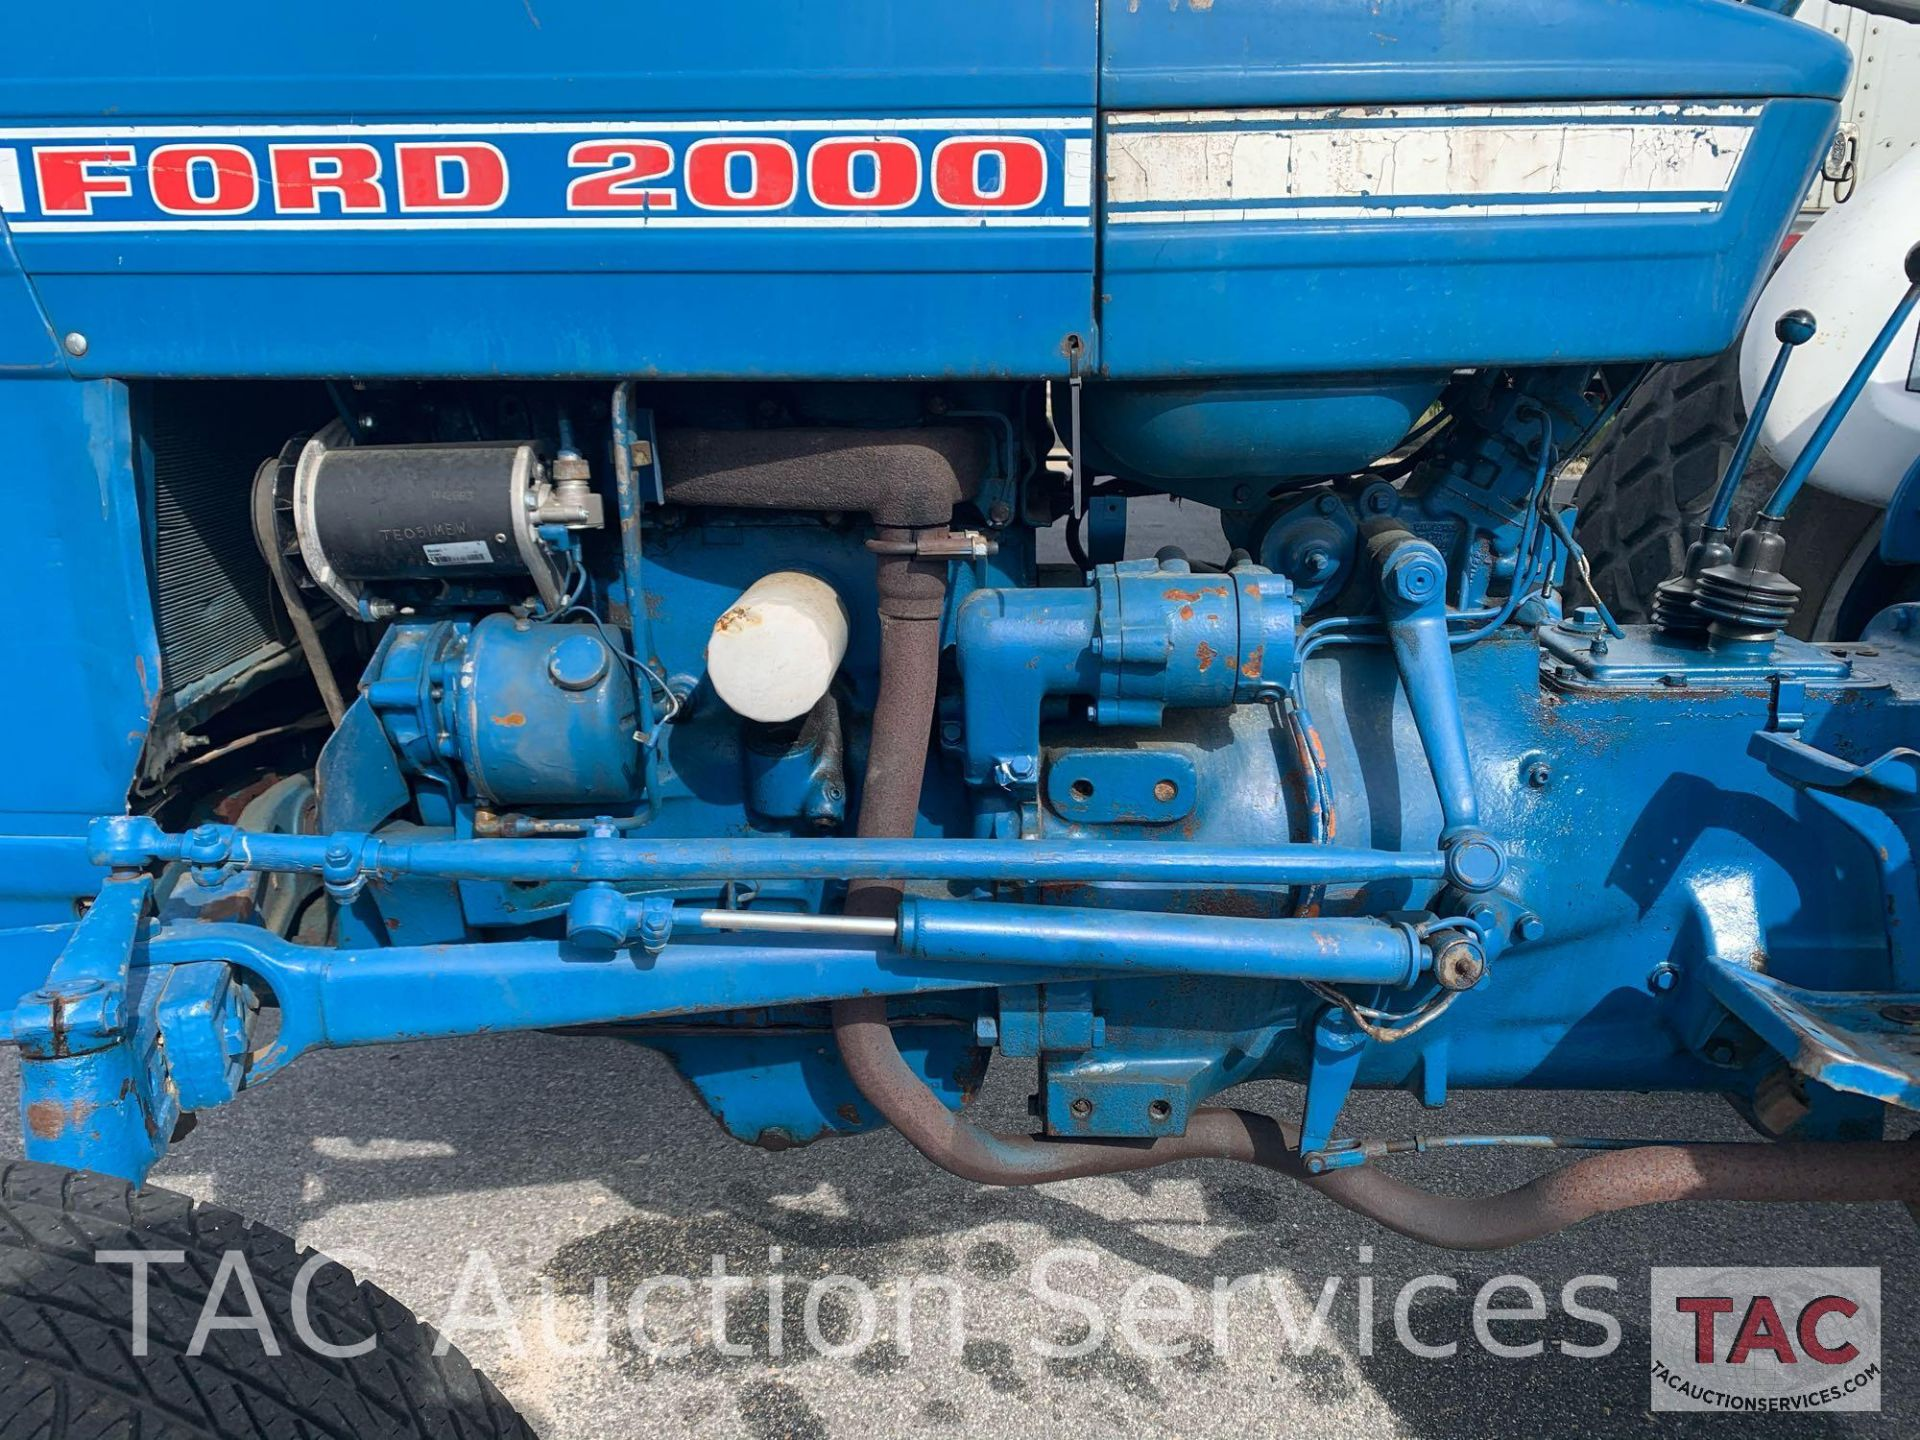 Ford 2000 Farm Tractor - Image 11 of 28